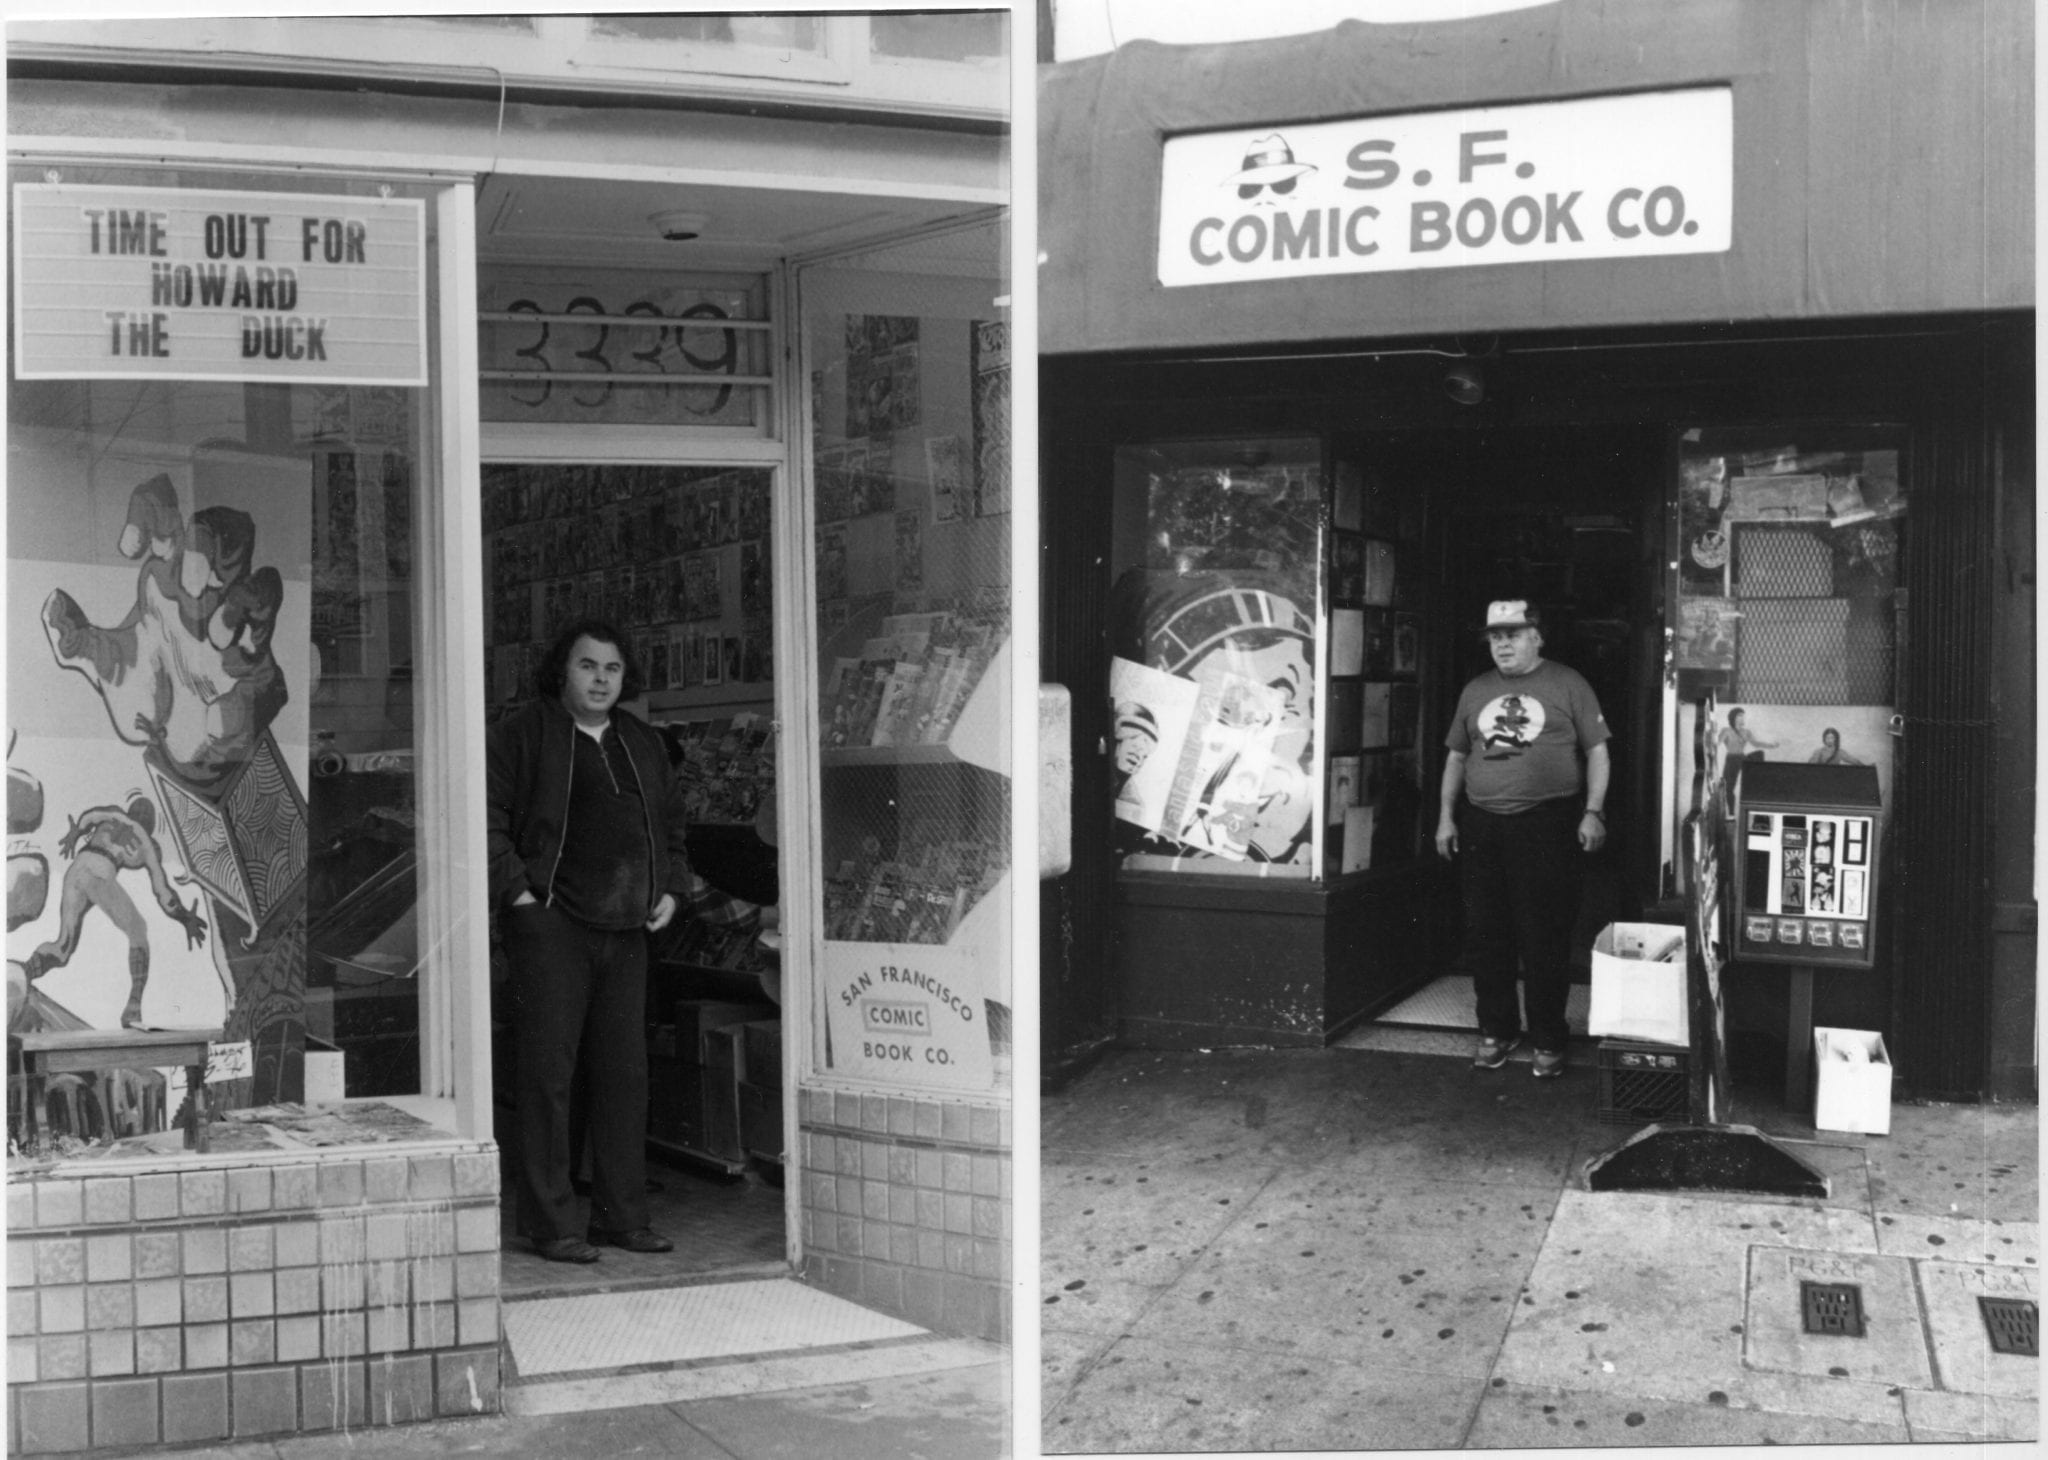 The 23rd Street storefront of the San Francisco Comic Book Company, 22 year apart. Photos by Patrick Rosenkranz.